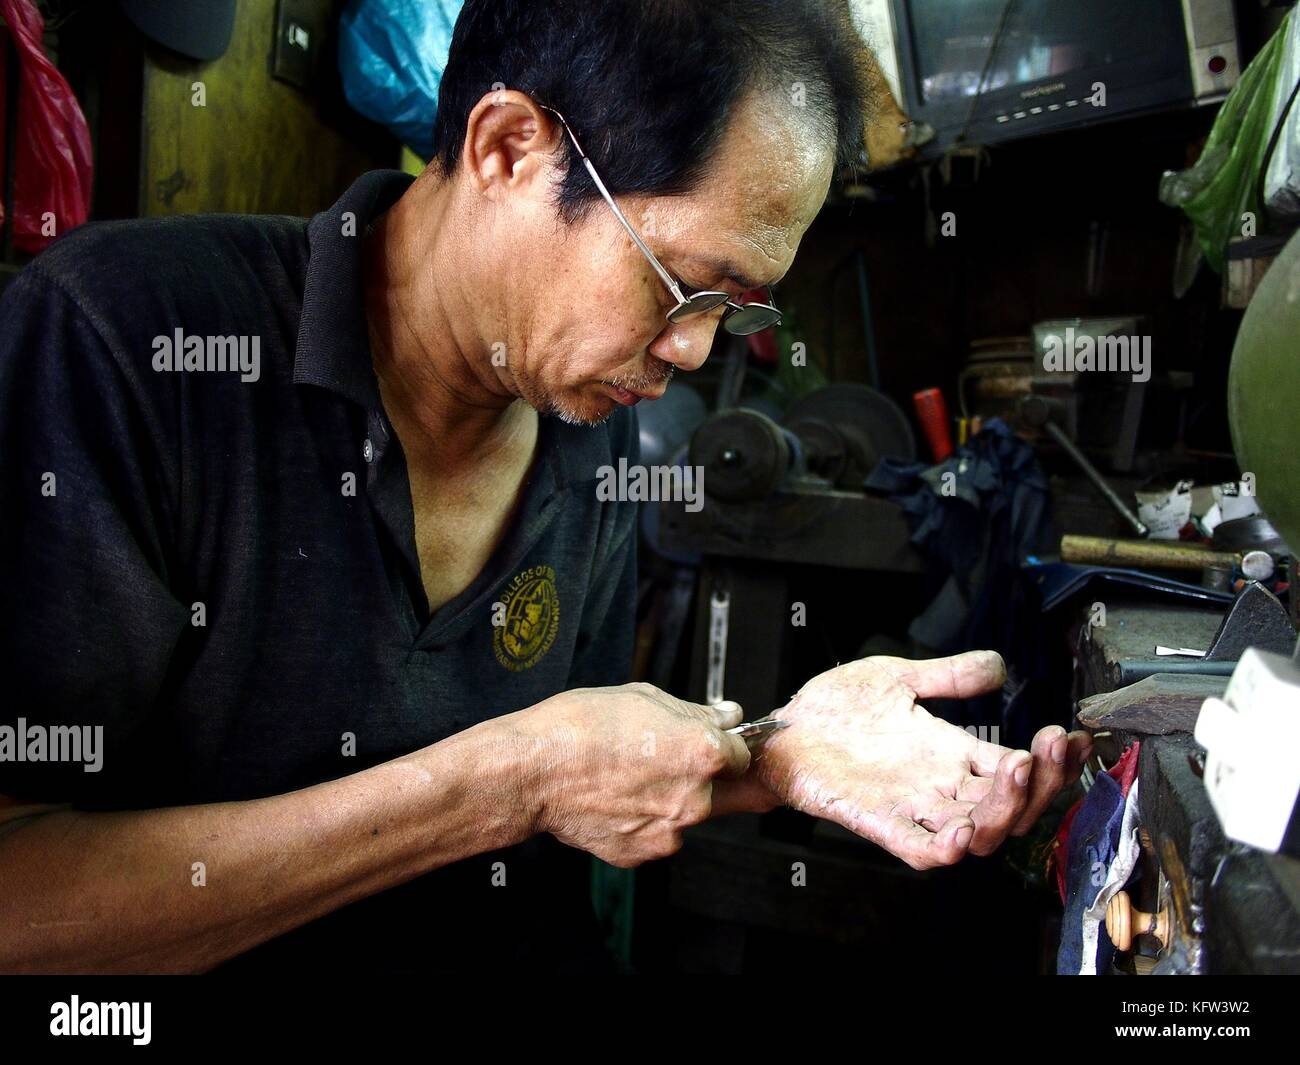 ANTIPOLO CITY, PHILIPPINES - OCTOBER 27, 2017: A worker tests a nipper he sharpened on the palm of his own hands. - Stock Image